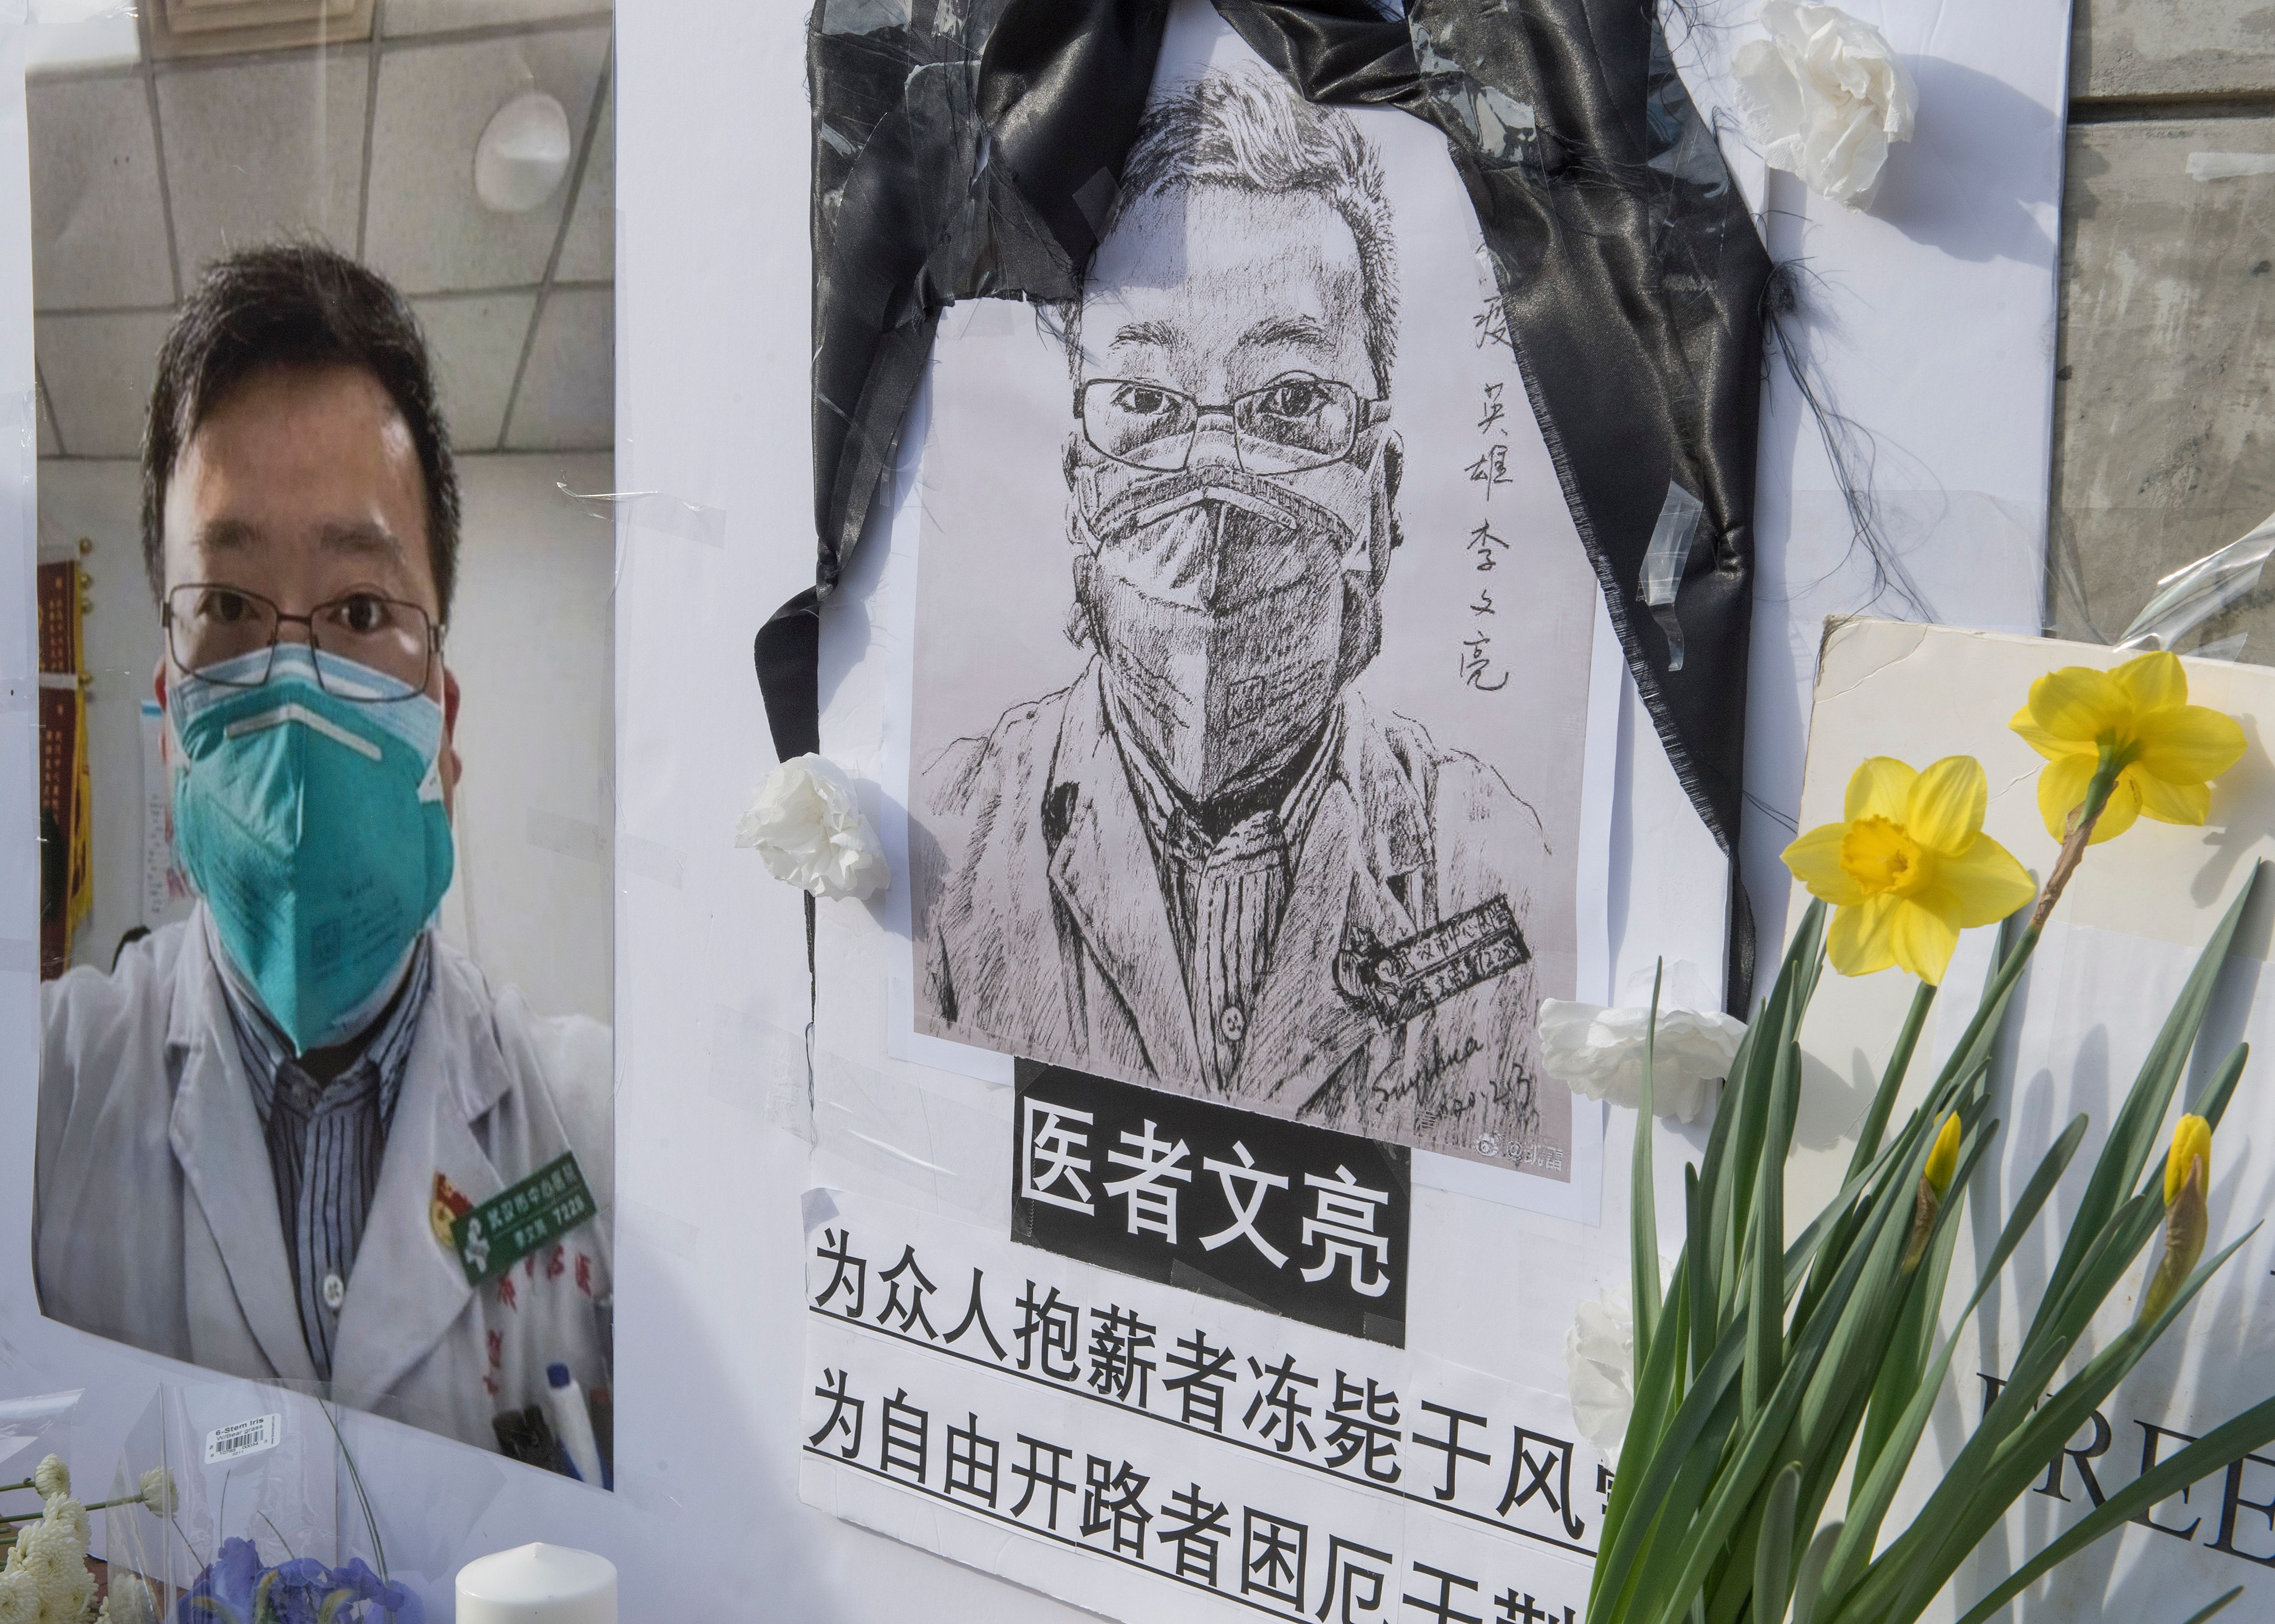 Chinese students and their supporters hold a memorial for Dr Li Wenliang, who was the whistleblower of the Coronavirus, Covid-19, that originated in Wuhan, China. (MARK RALSTON/AFP via Getty Images)